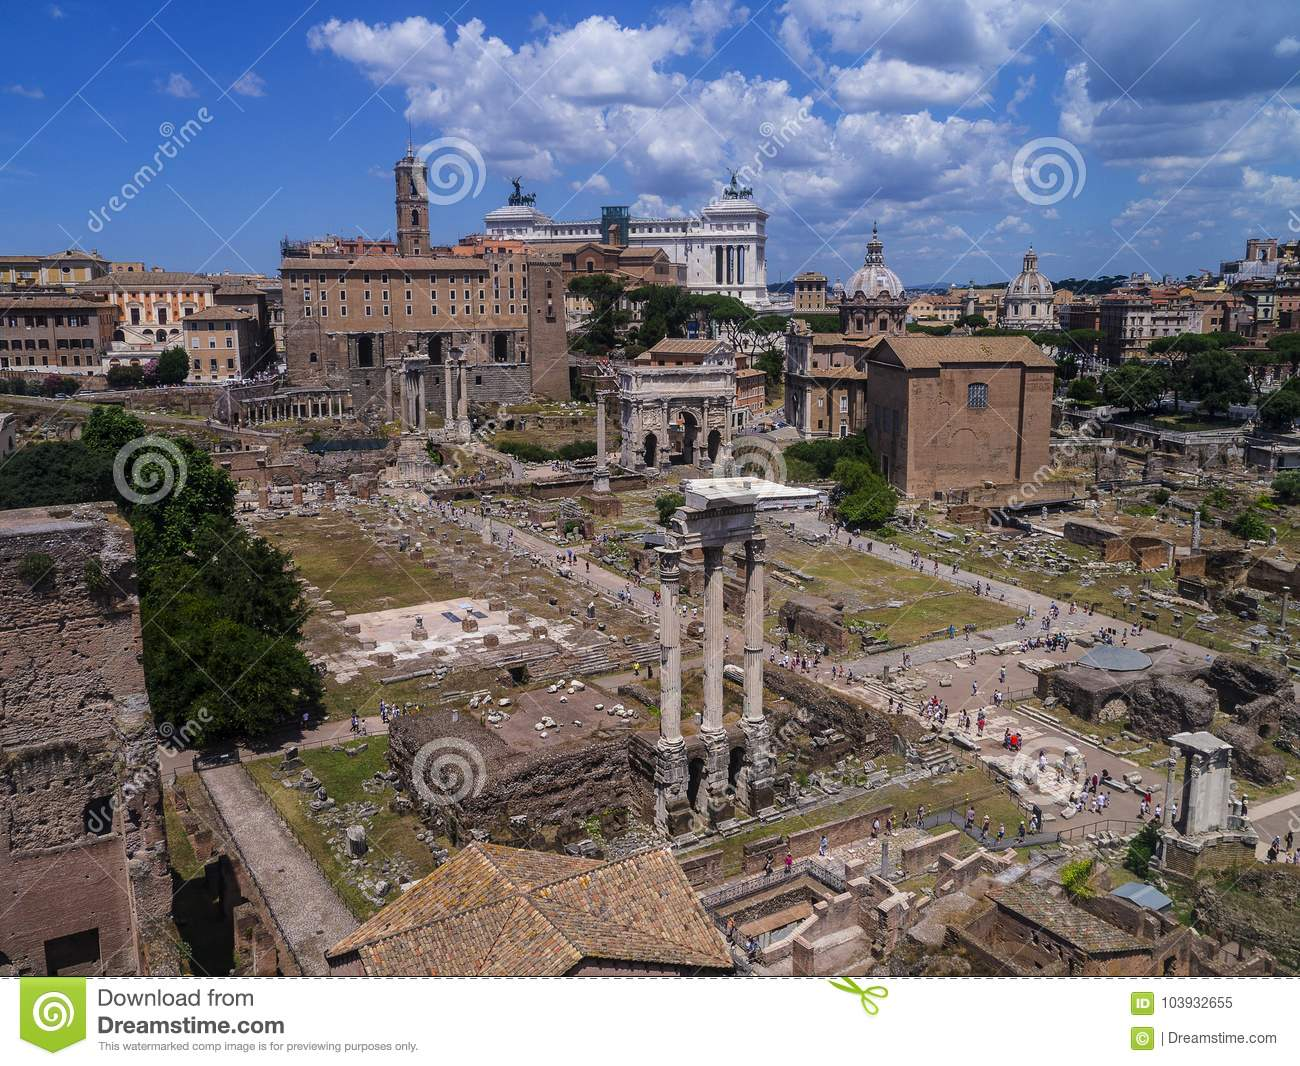 The Ancient Roman Forum from the Palatine Hill in Rome Italy